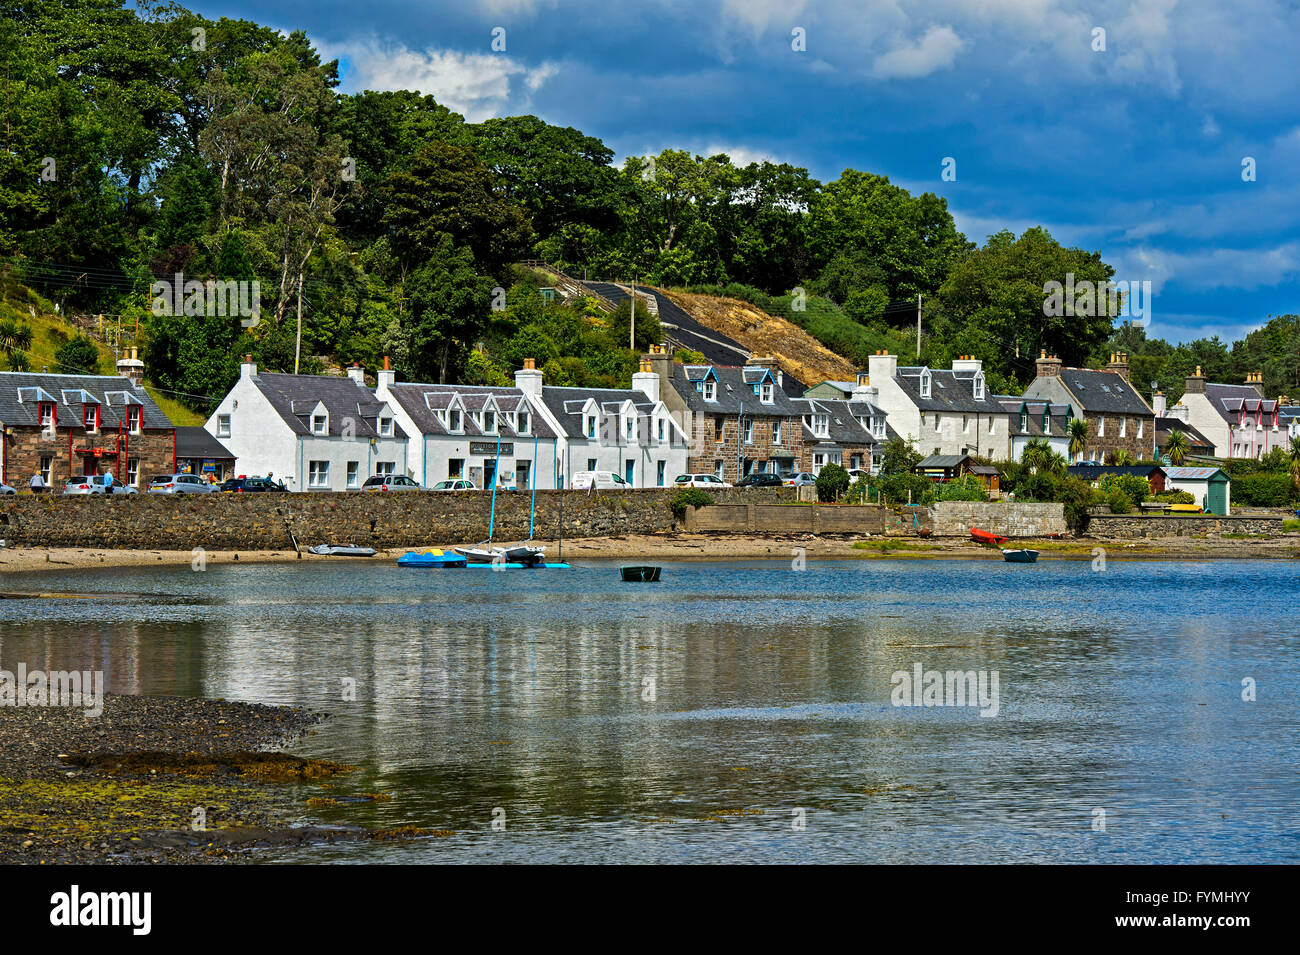 Plockton at Loch Carron, Ross and Cromarty, Scottish Highlands, Scotland, Great Britain - Stock Image